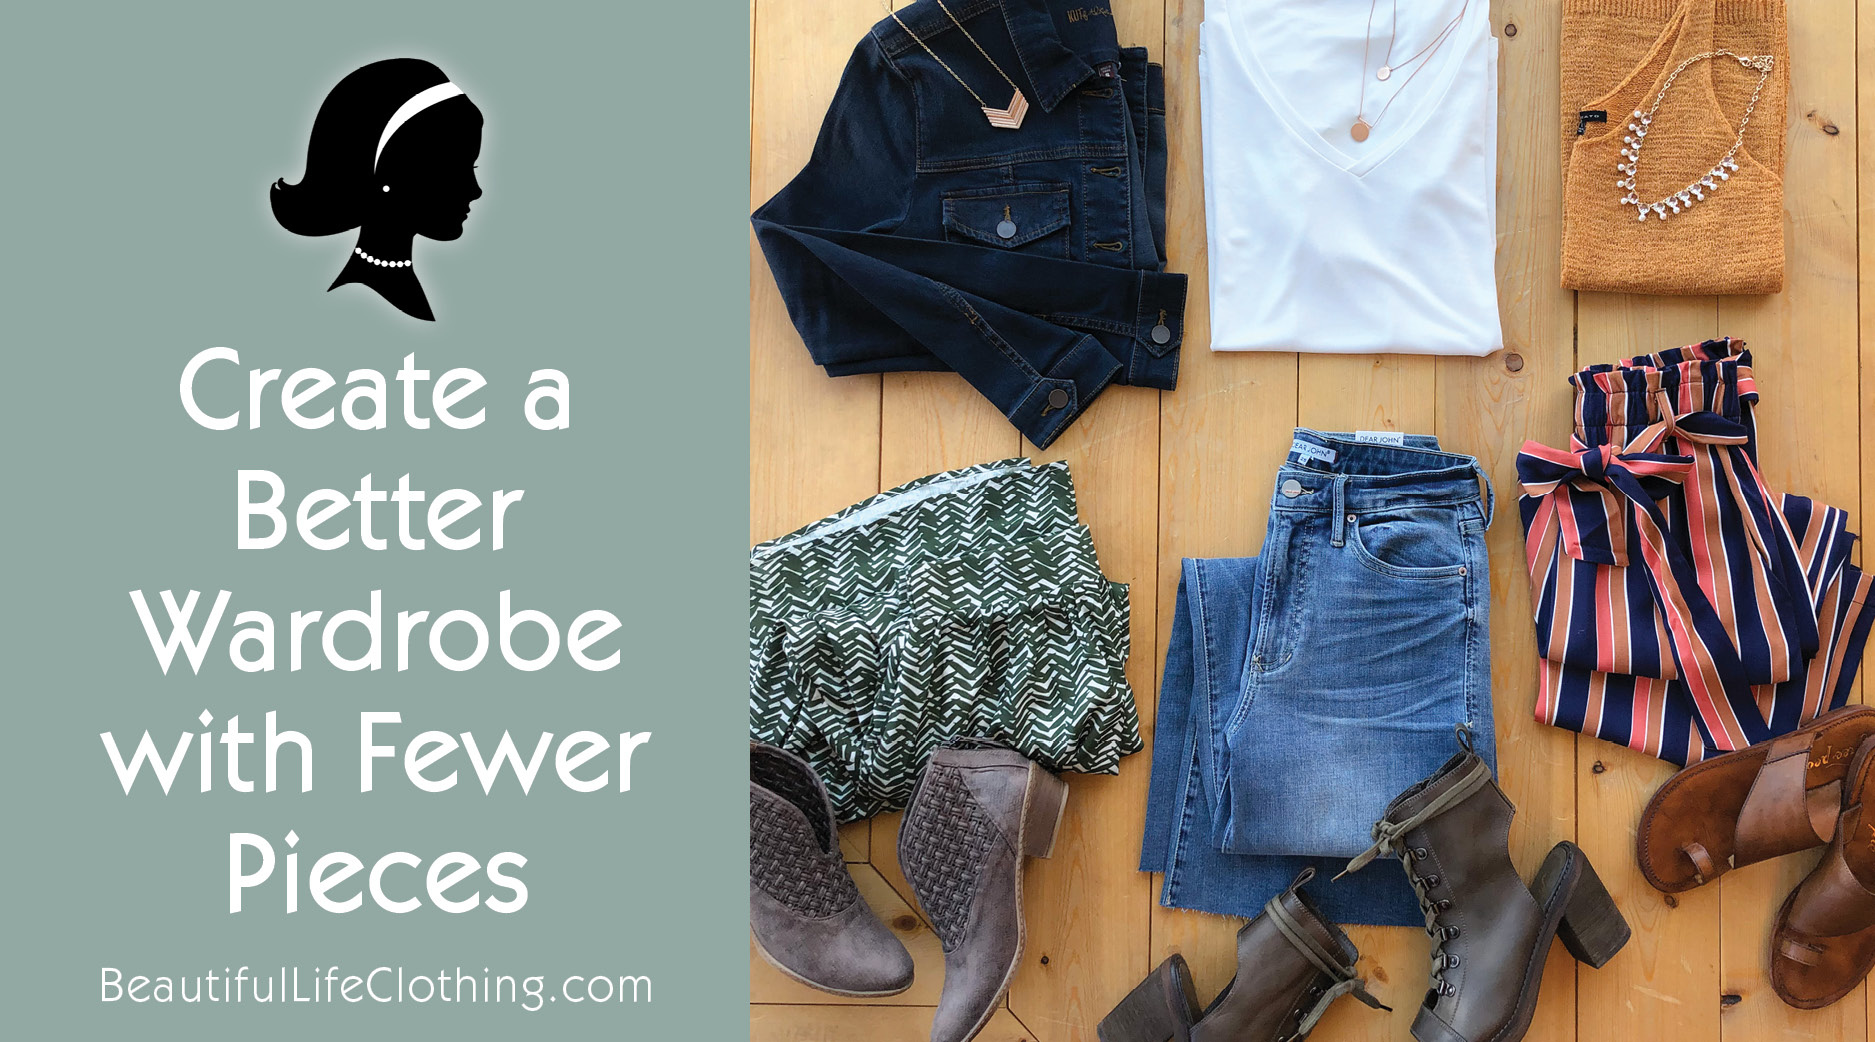 Create a Better Wardrobe with Fewer Pieces